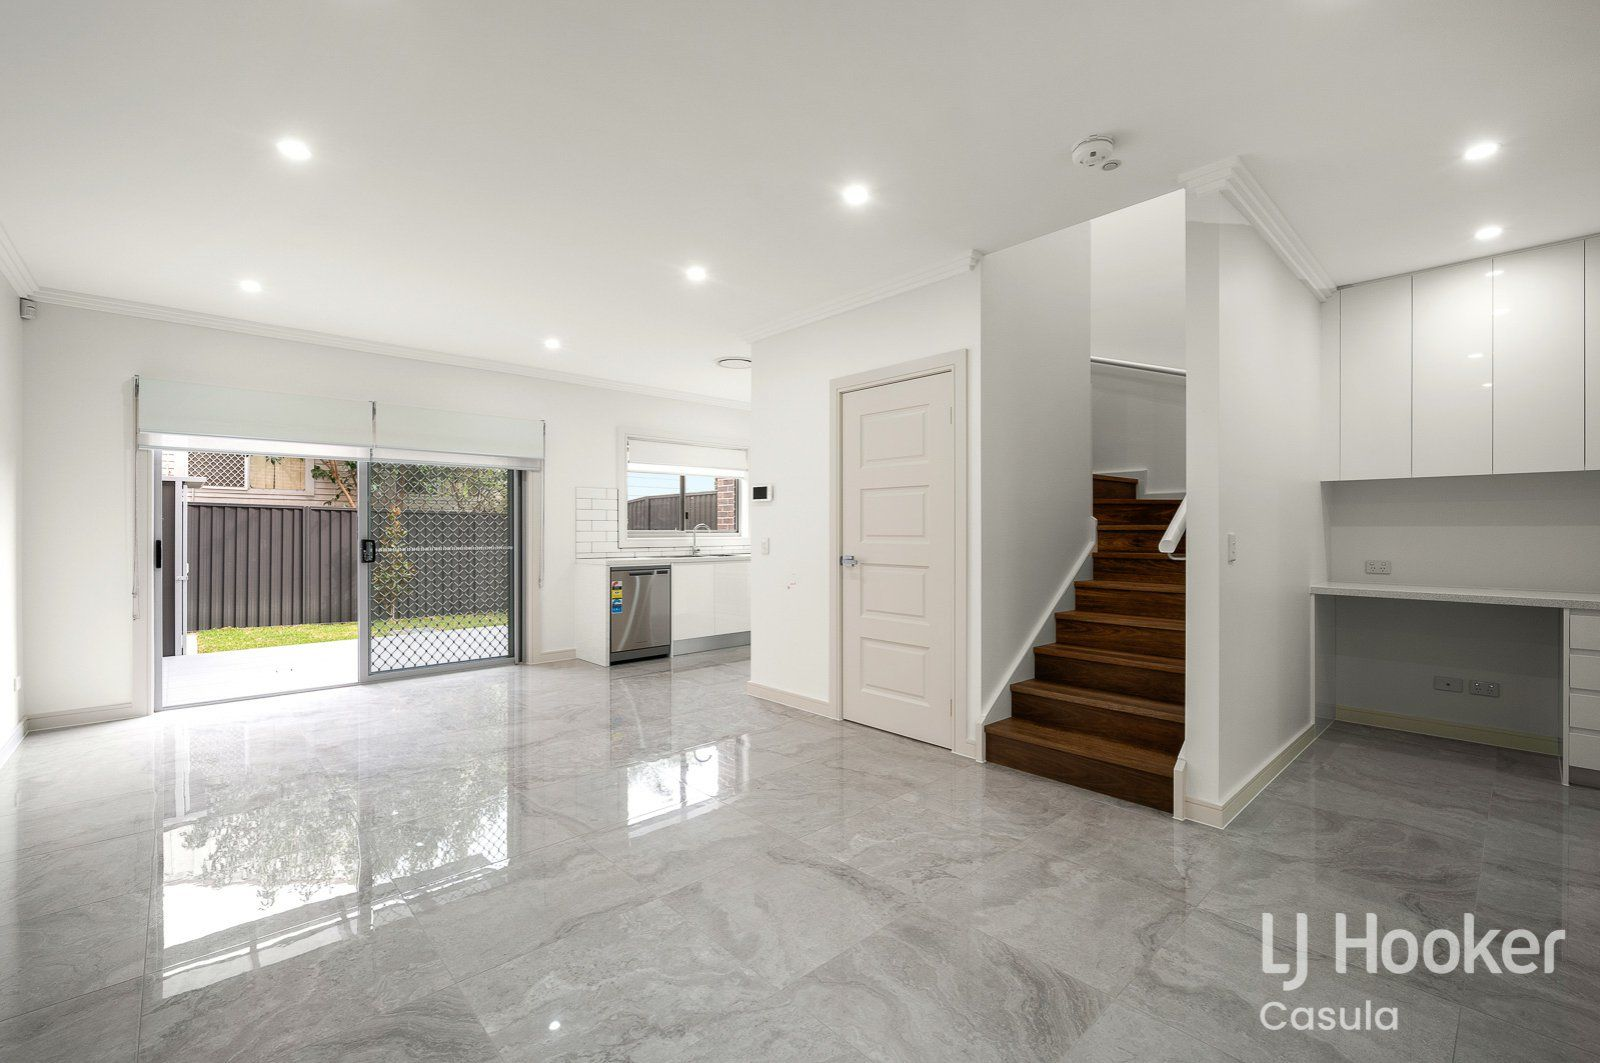 2/6 Holland Crescent, Casula NSW 2170, Image 1